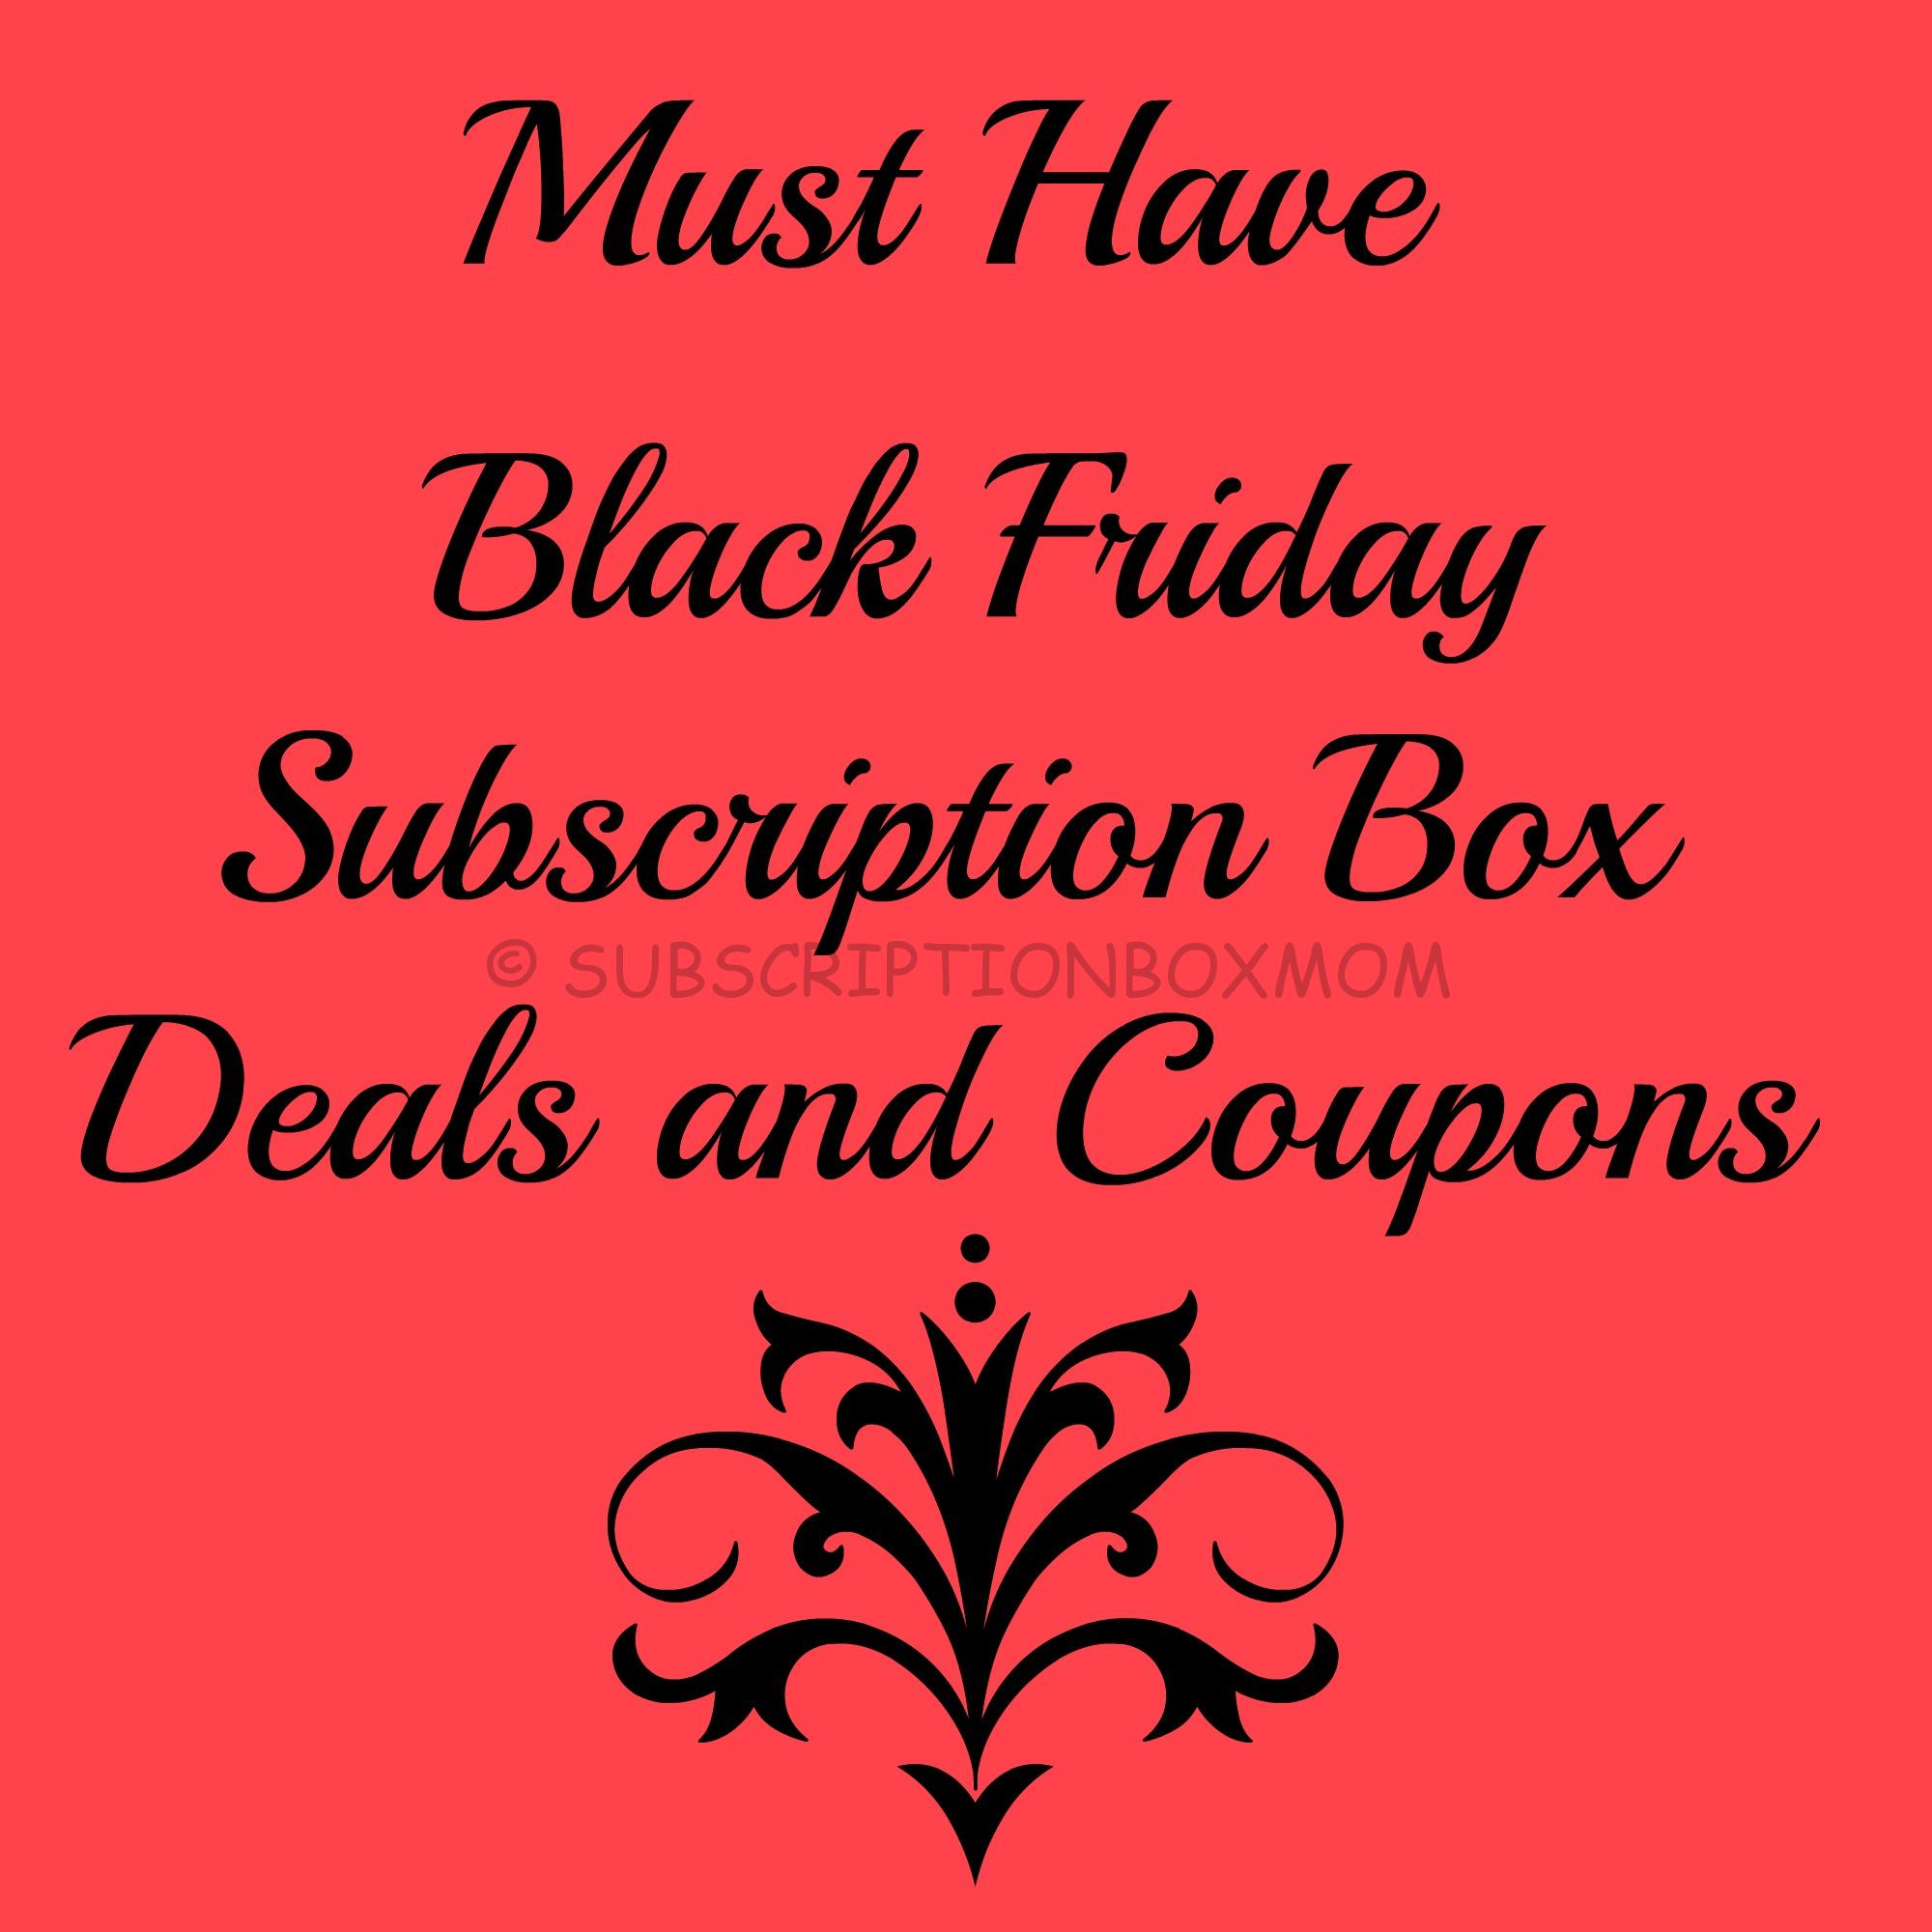 Must Have Black Friday Subscription Box Deals